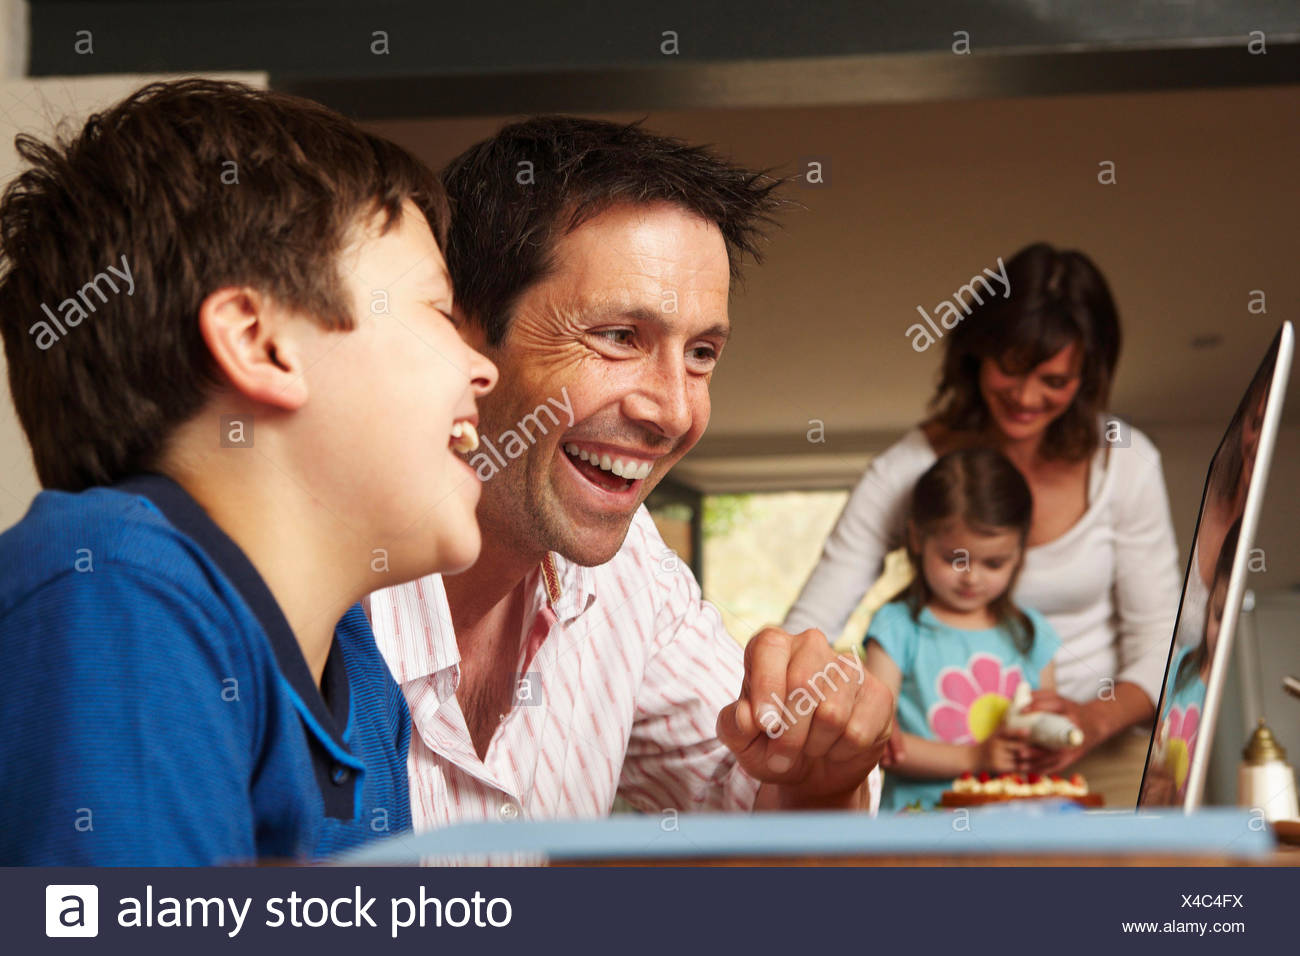 A family, two parents and two children together at home. A father and son on a laptop, and mother and daughter icing a cake. - Stock Image